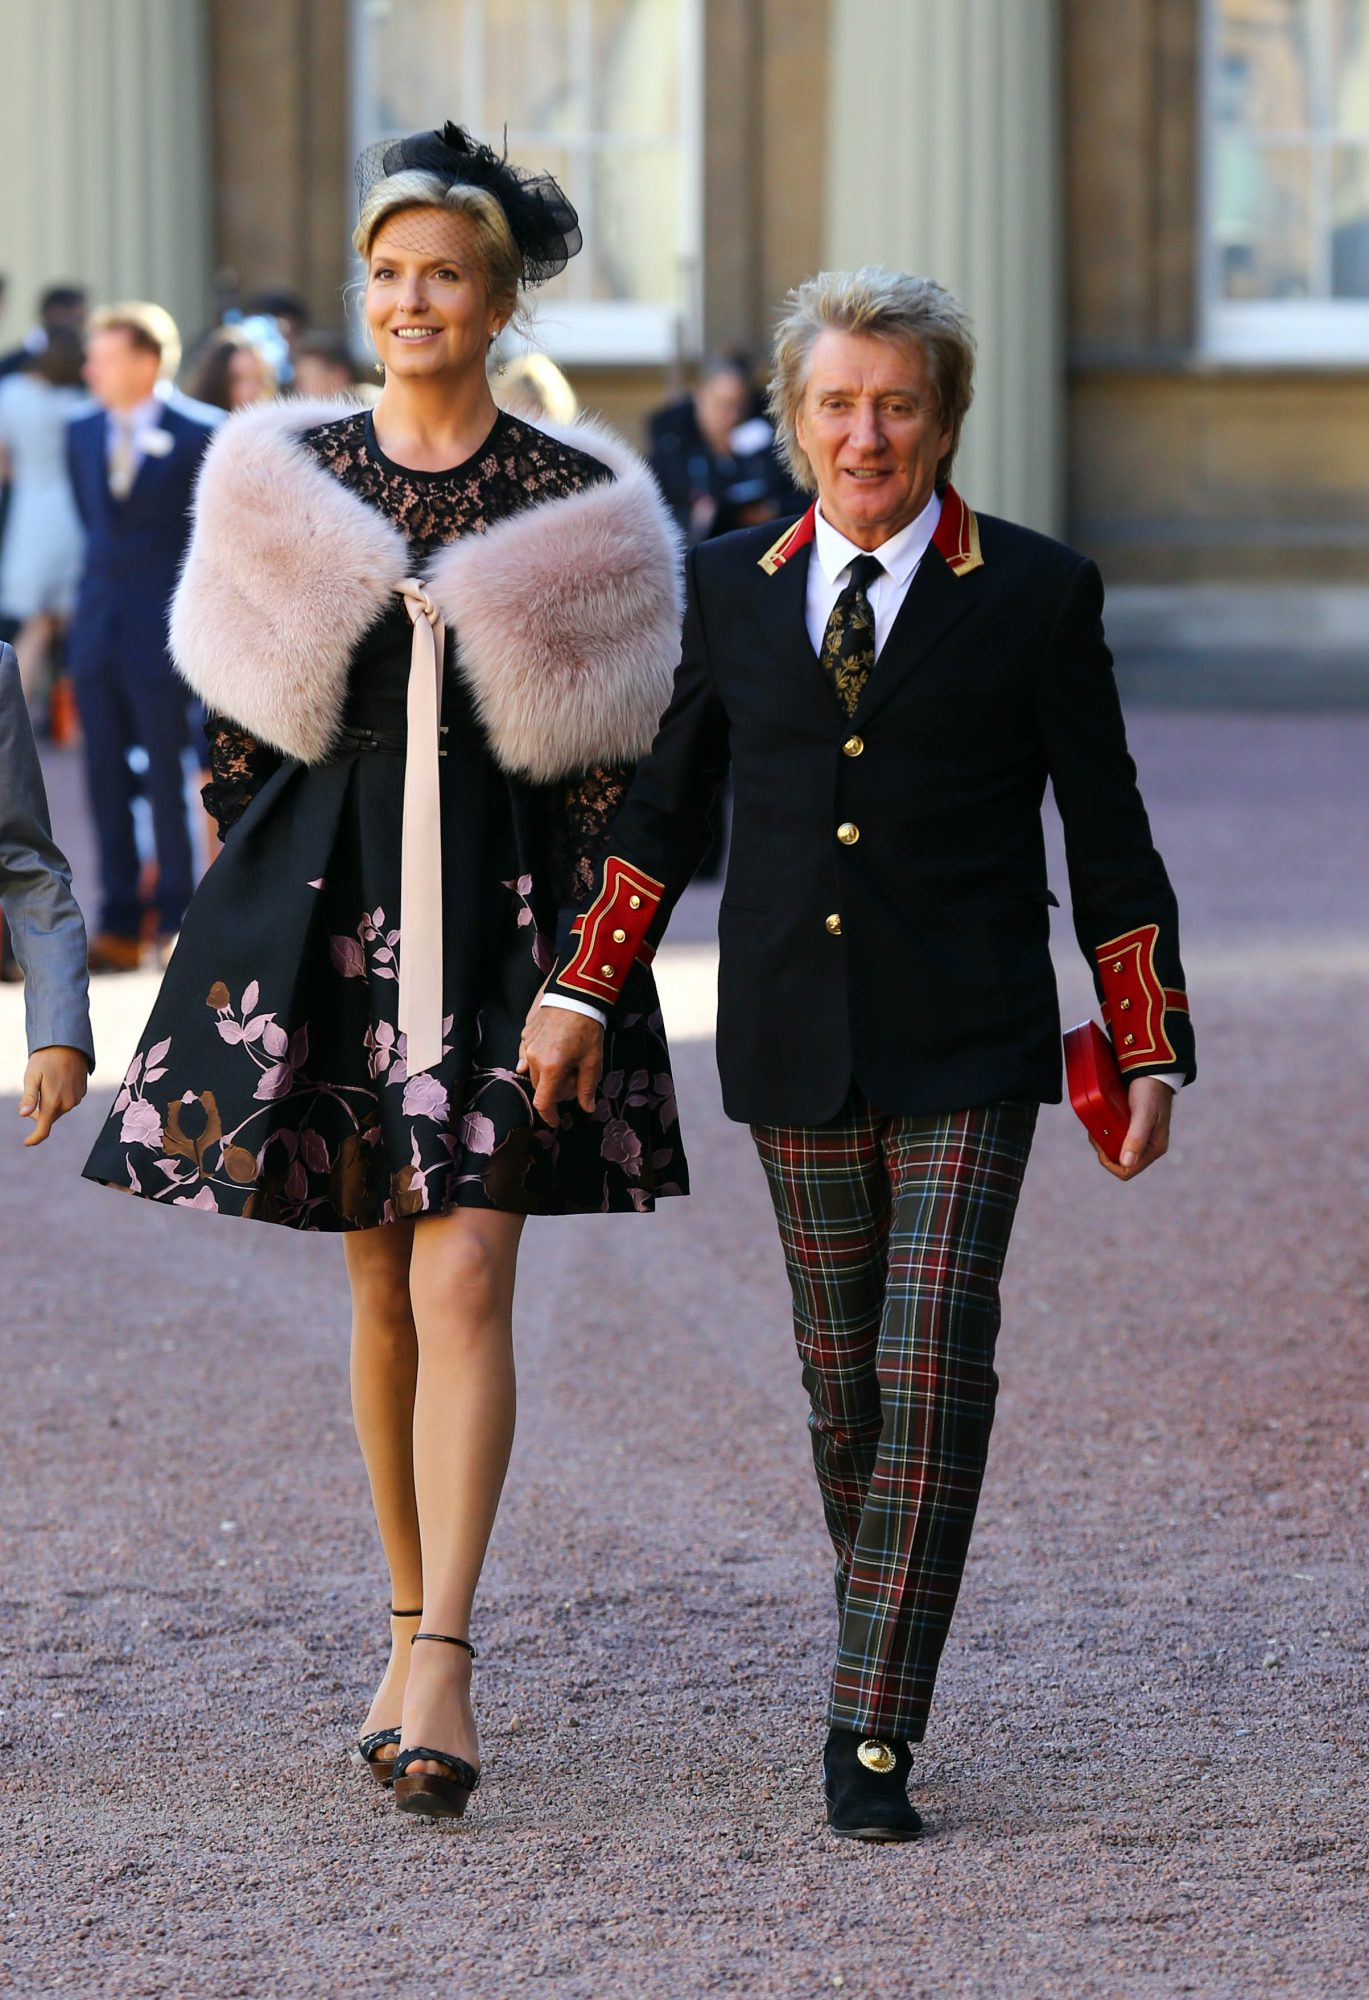 LONDON, ENGLAND - OCTOBER 11: Sir Rod Stewart with his wife, Penny Lancaster after he received his knighthood in recognition of his services to music and charity at Buckingham Palace on October 11, 2016 in London, England. (Photo by Gareth Fulller - WPA Pool/Getty Images)